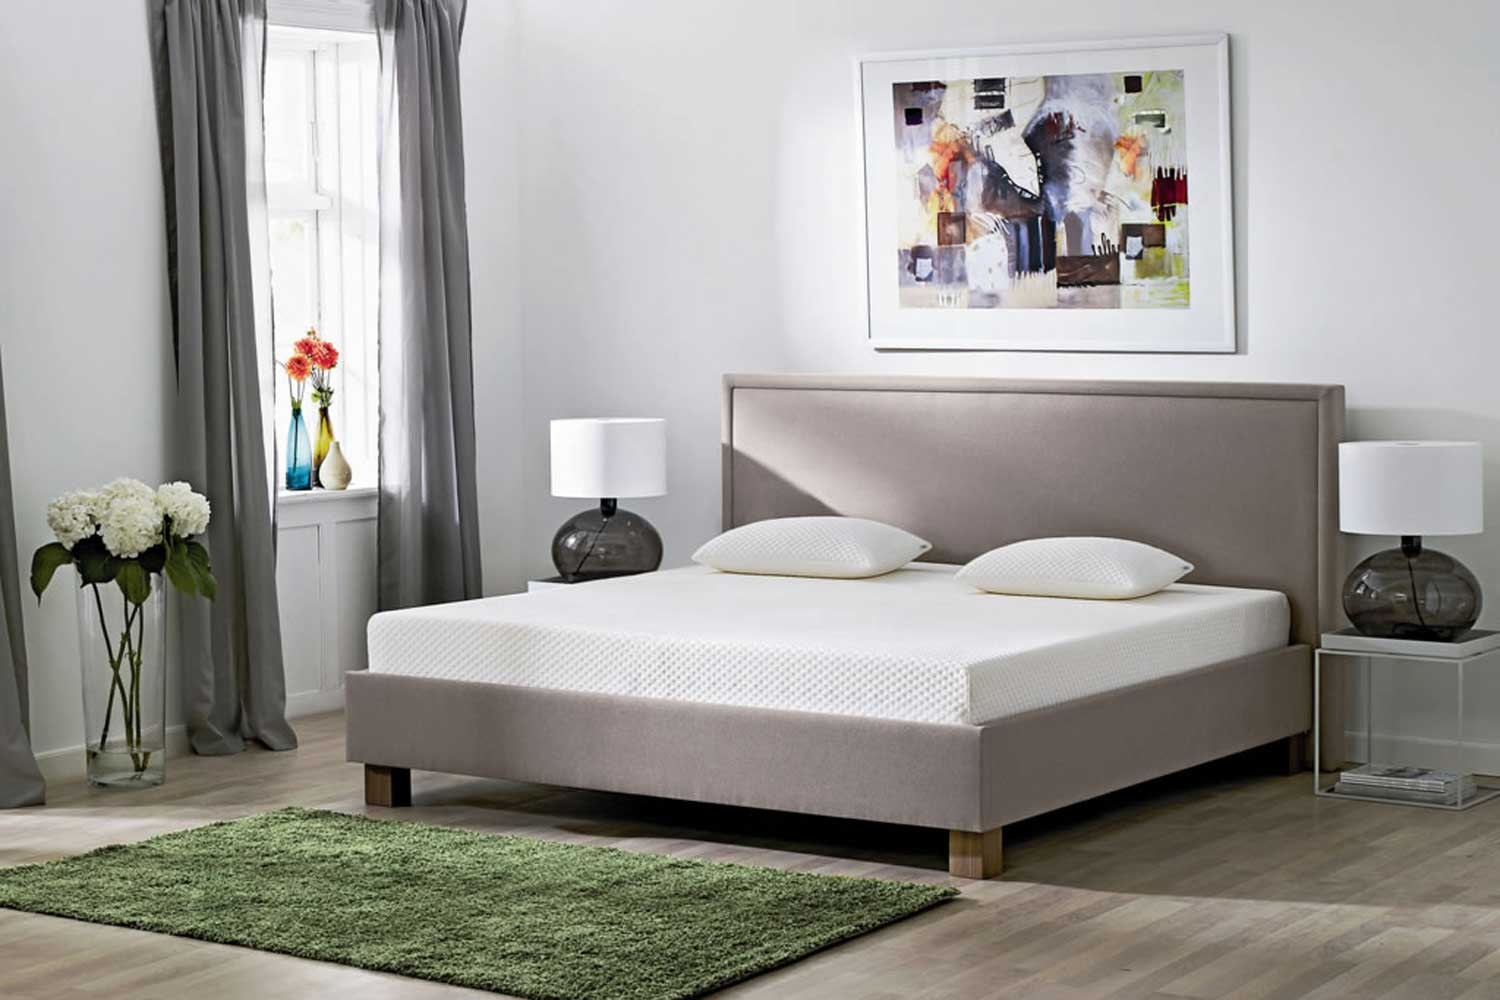 Tempur Original 19cm Mattress